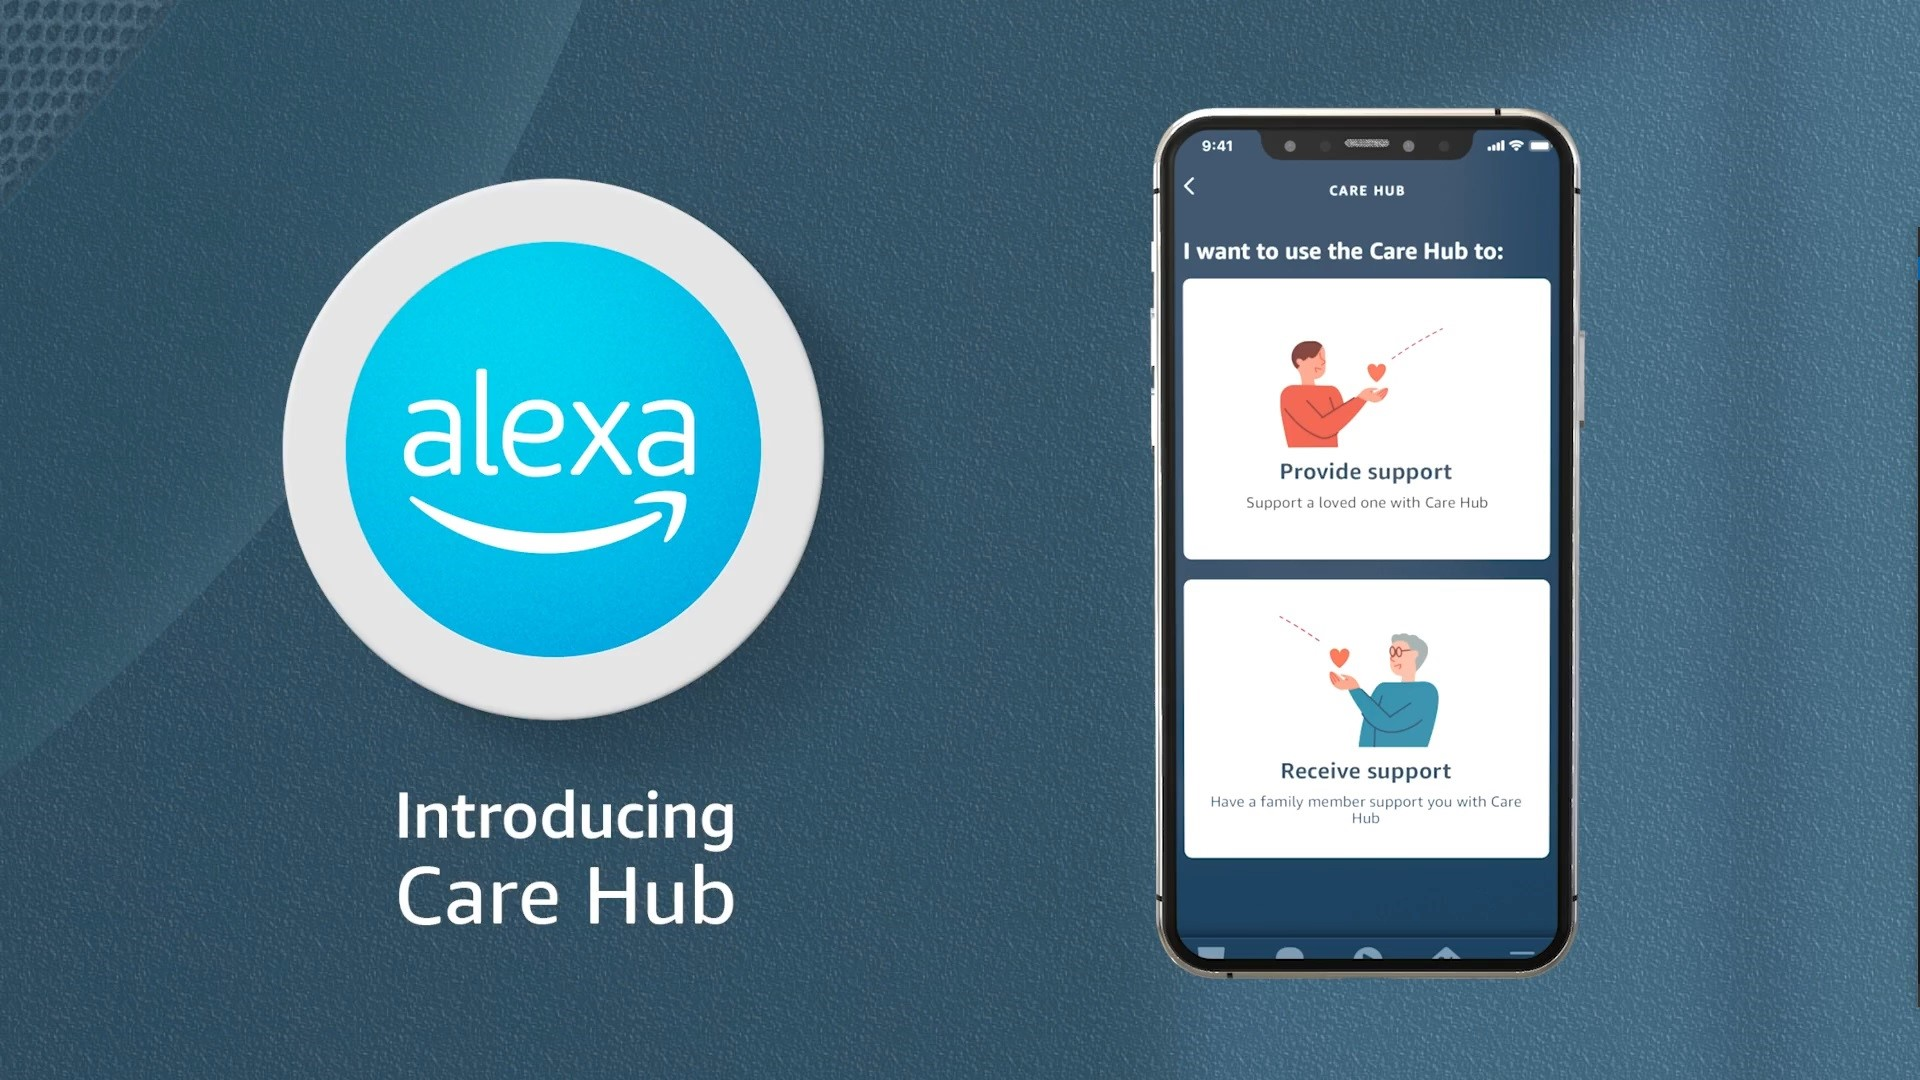 Alexa Care Hub: Everything you need to know - The Tech Helper